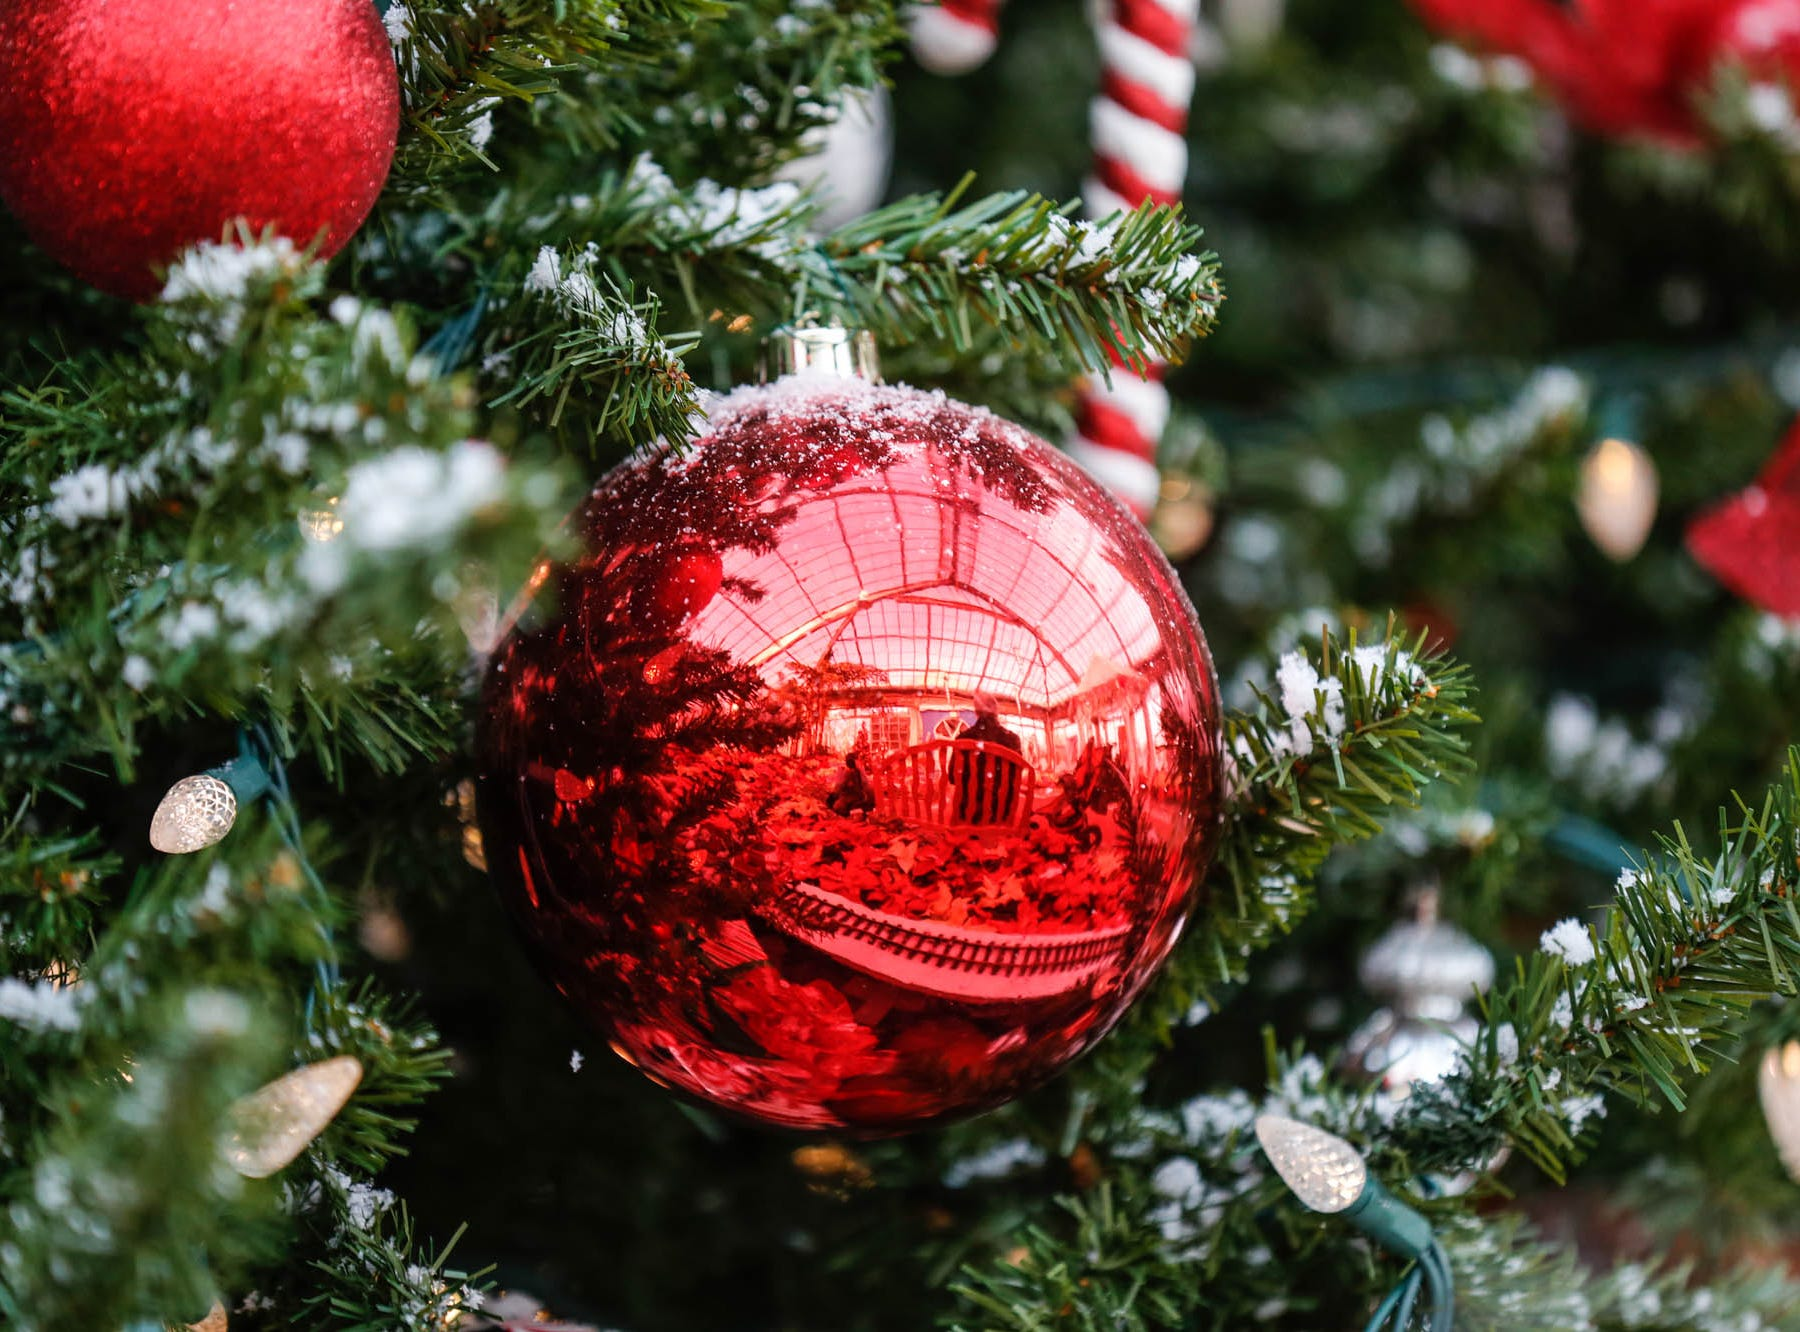 A Christmas ornament reflects in the Conservatory Crossing holiday display at the Garfield Park Conservatory on Saturday, Dec. 29, 2018.